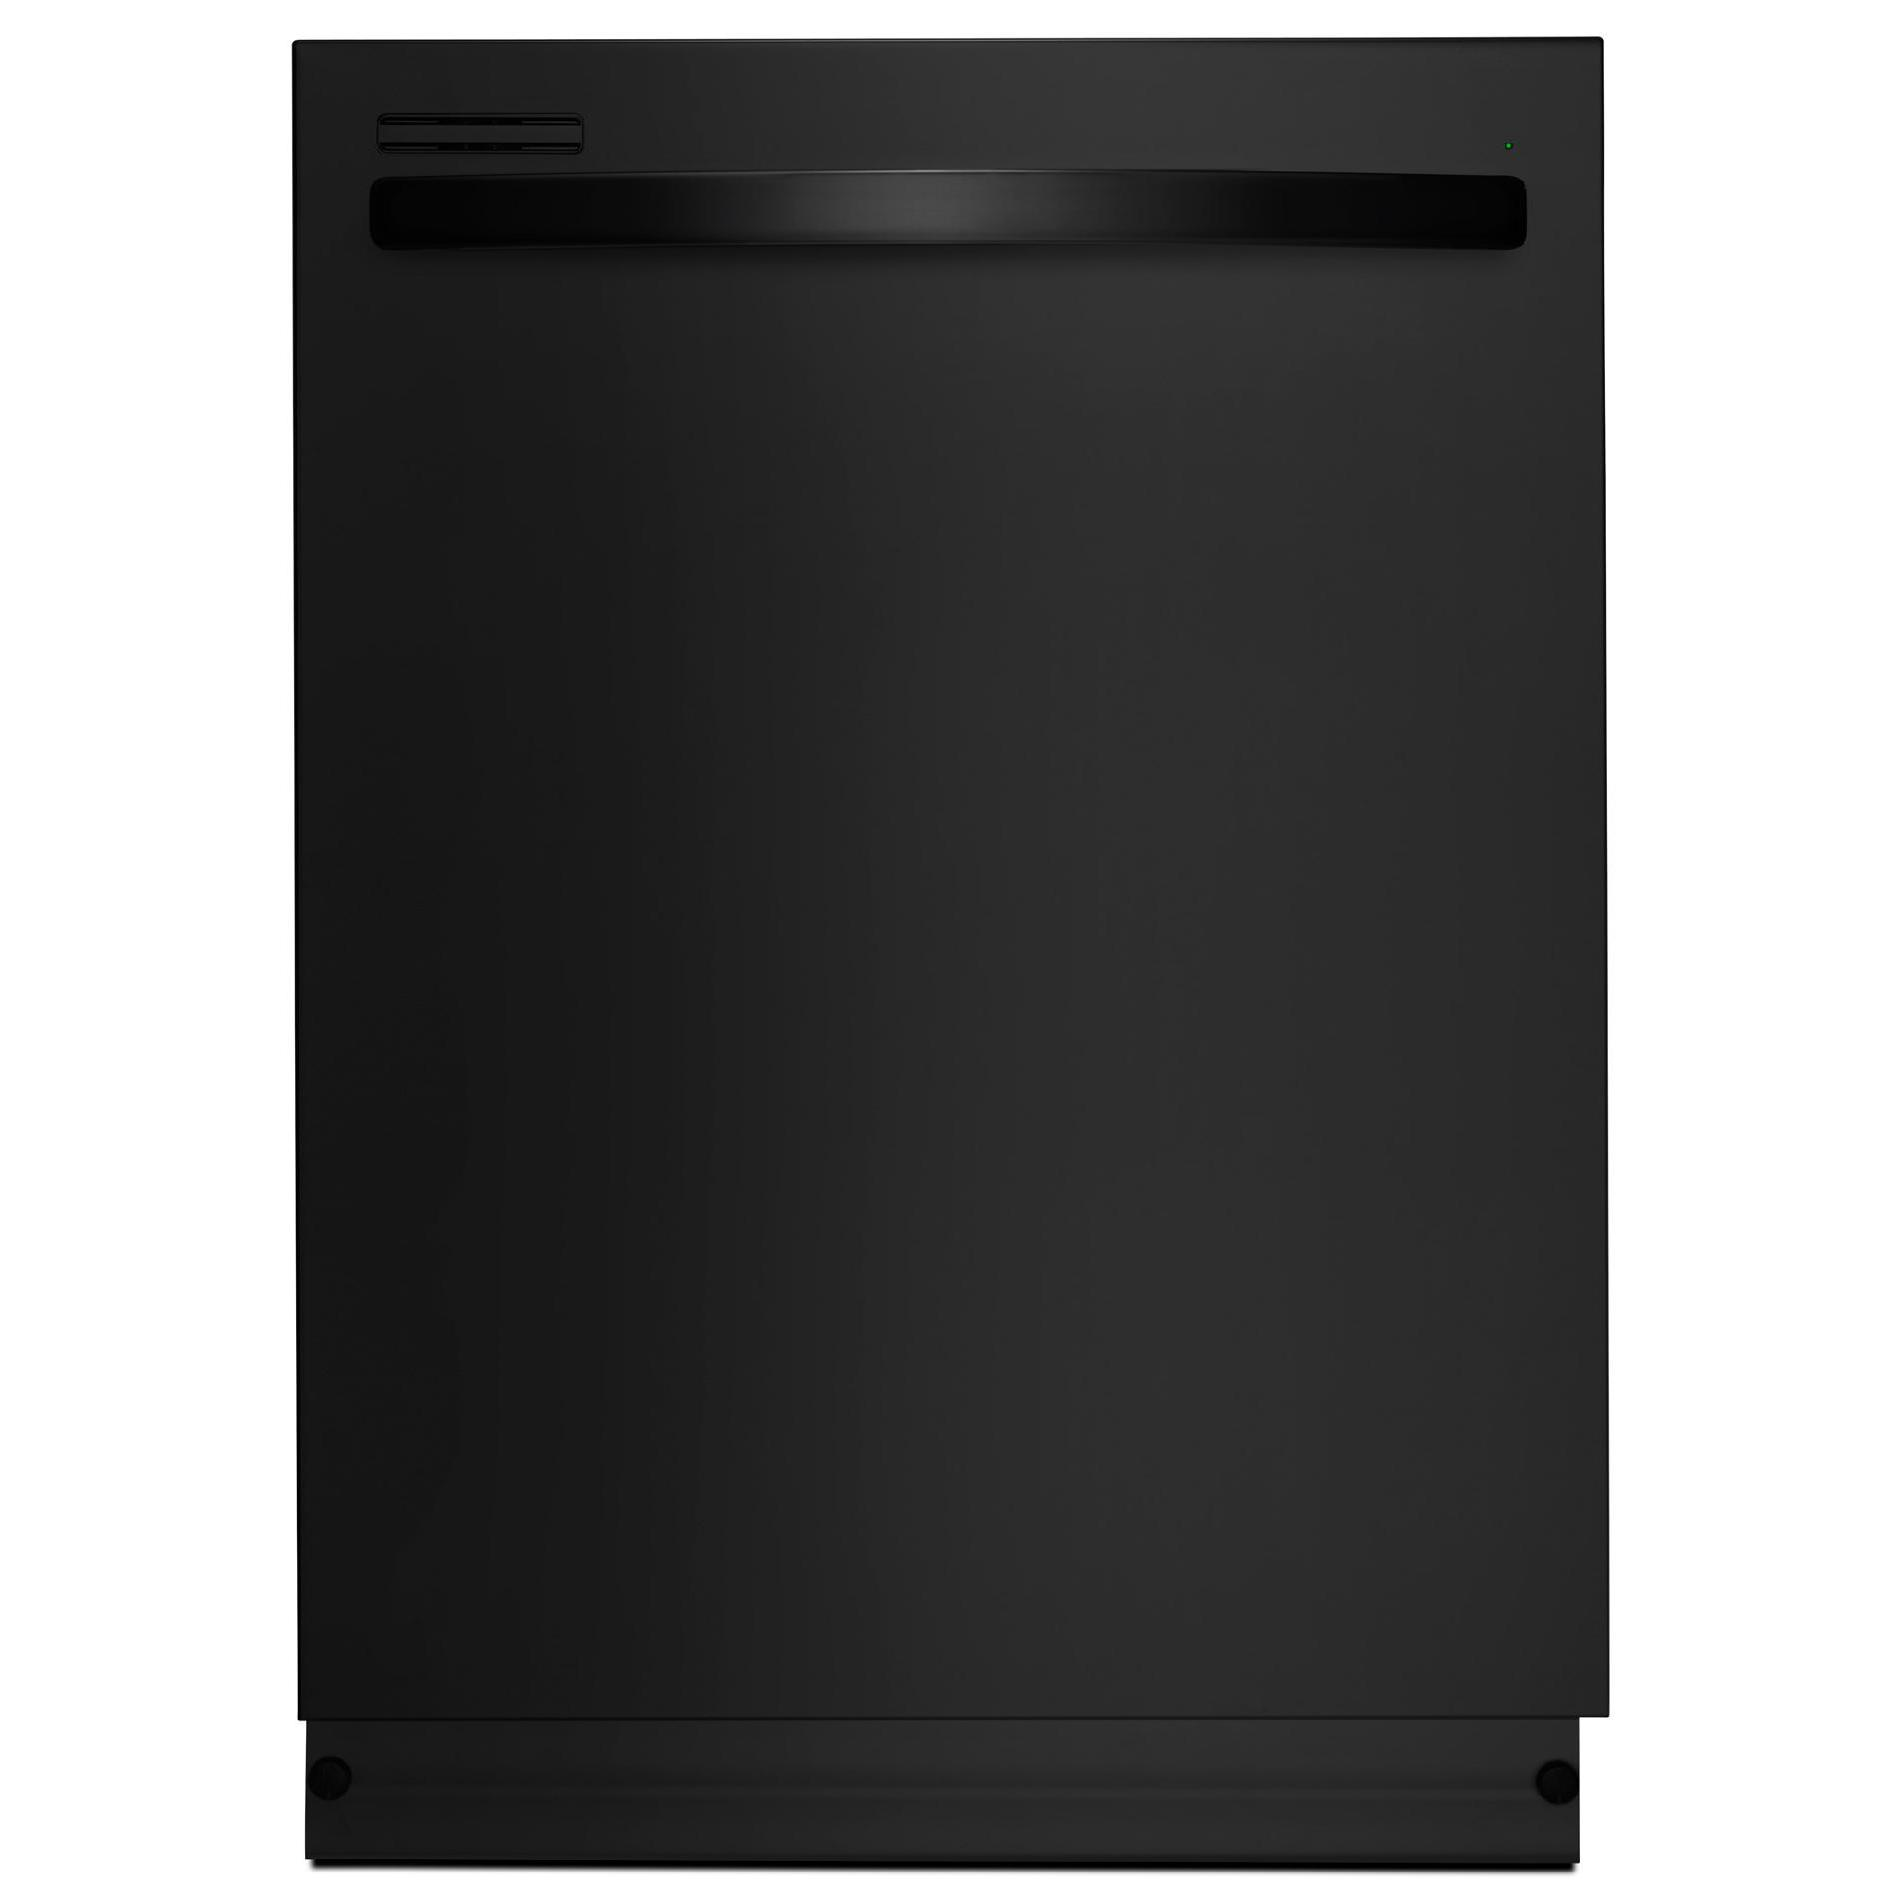 Choosing The Best Dishwasher For Your Home